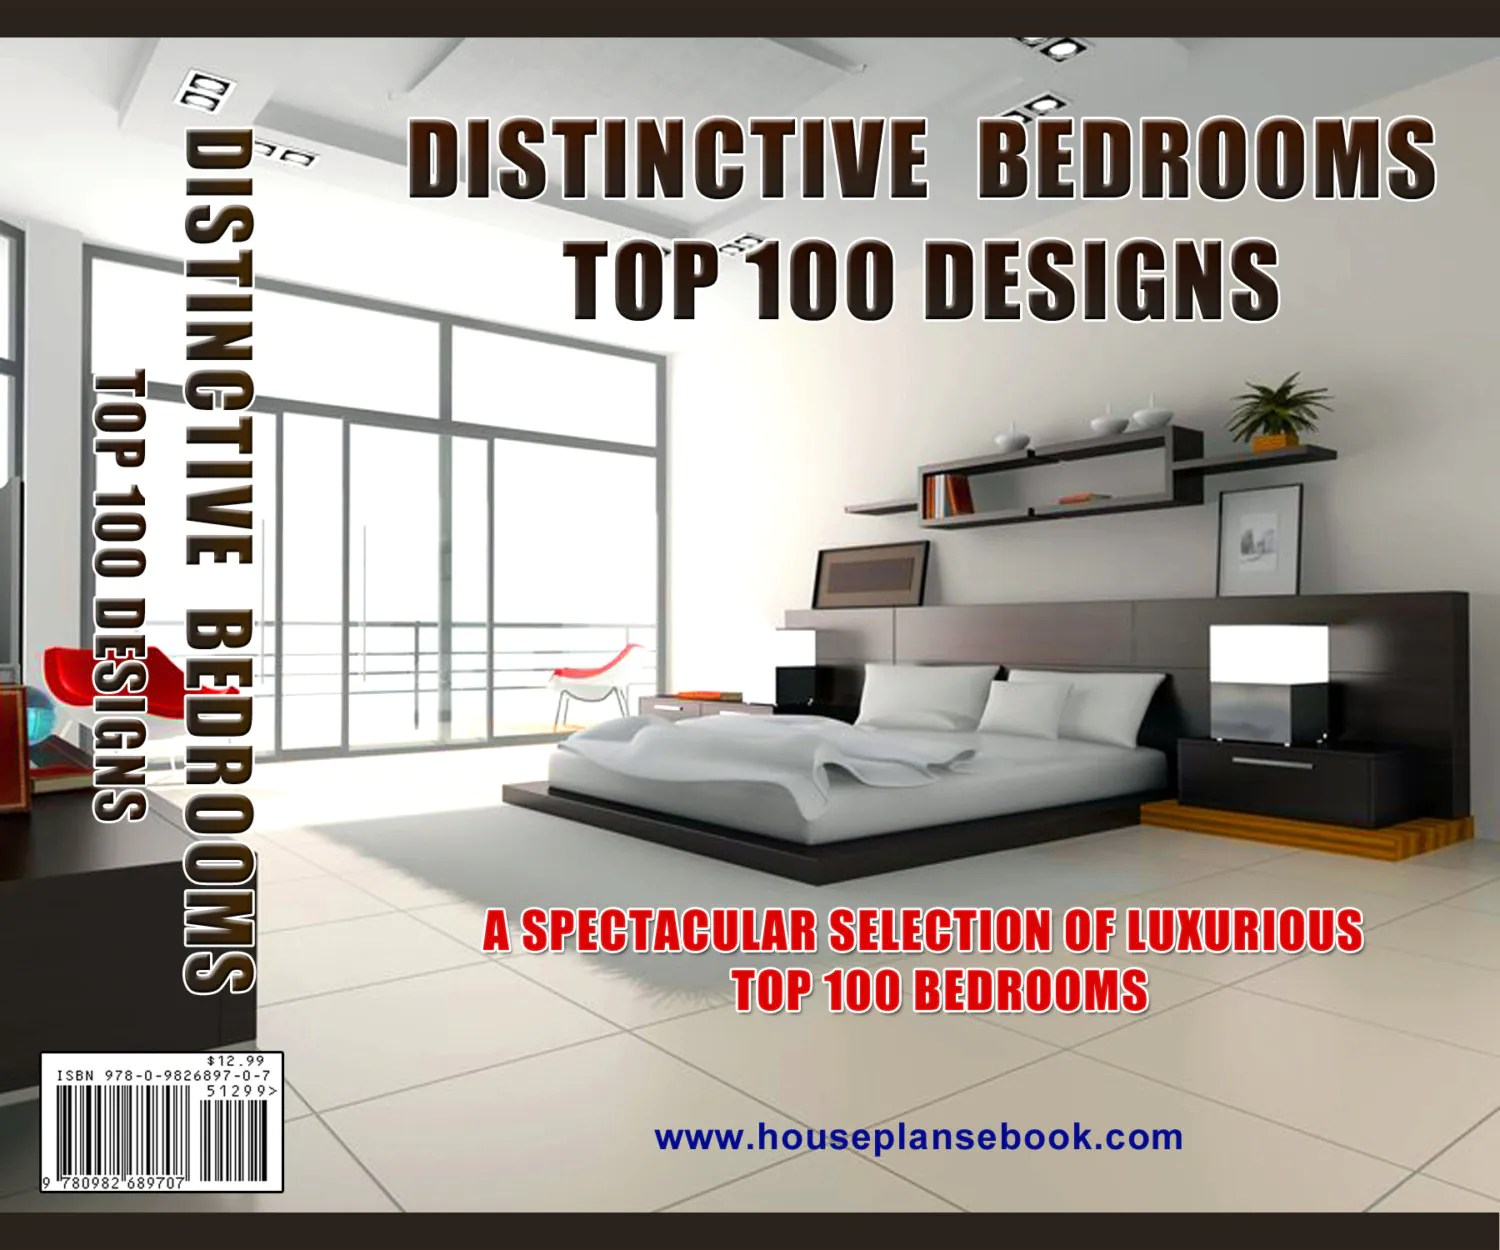 Best Kitchen Design Books Distinctive Bedrooms Design Book Bedroom Ideas Bedroom Etsy